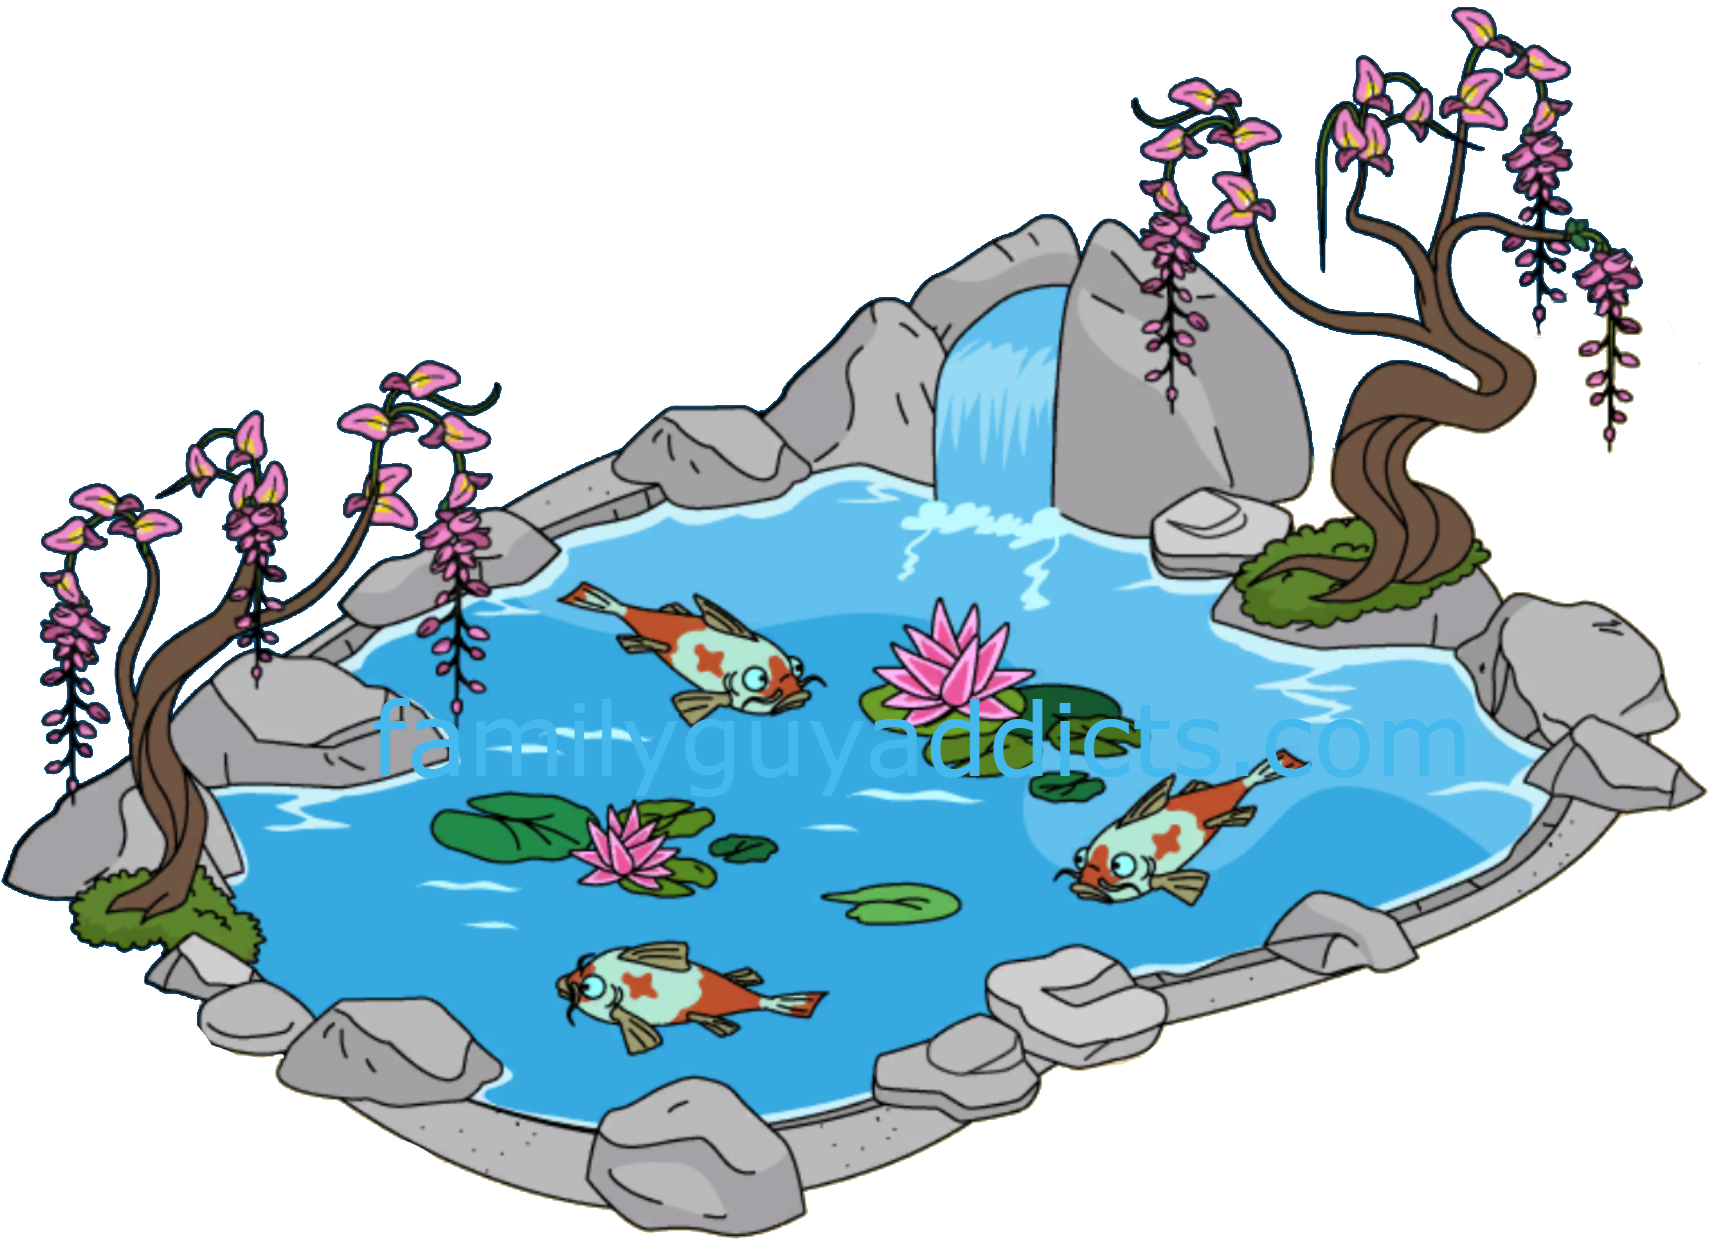 Fish pound clipart png freeuse library 28+ Collection of Koi Pond Clipart | High quality, free cliparts ... png freeuse library